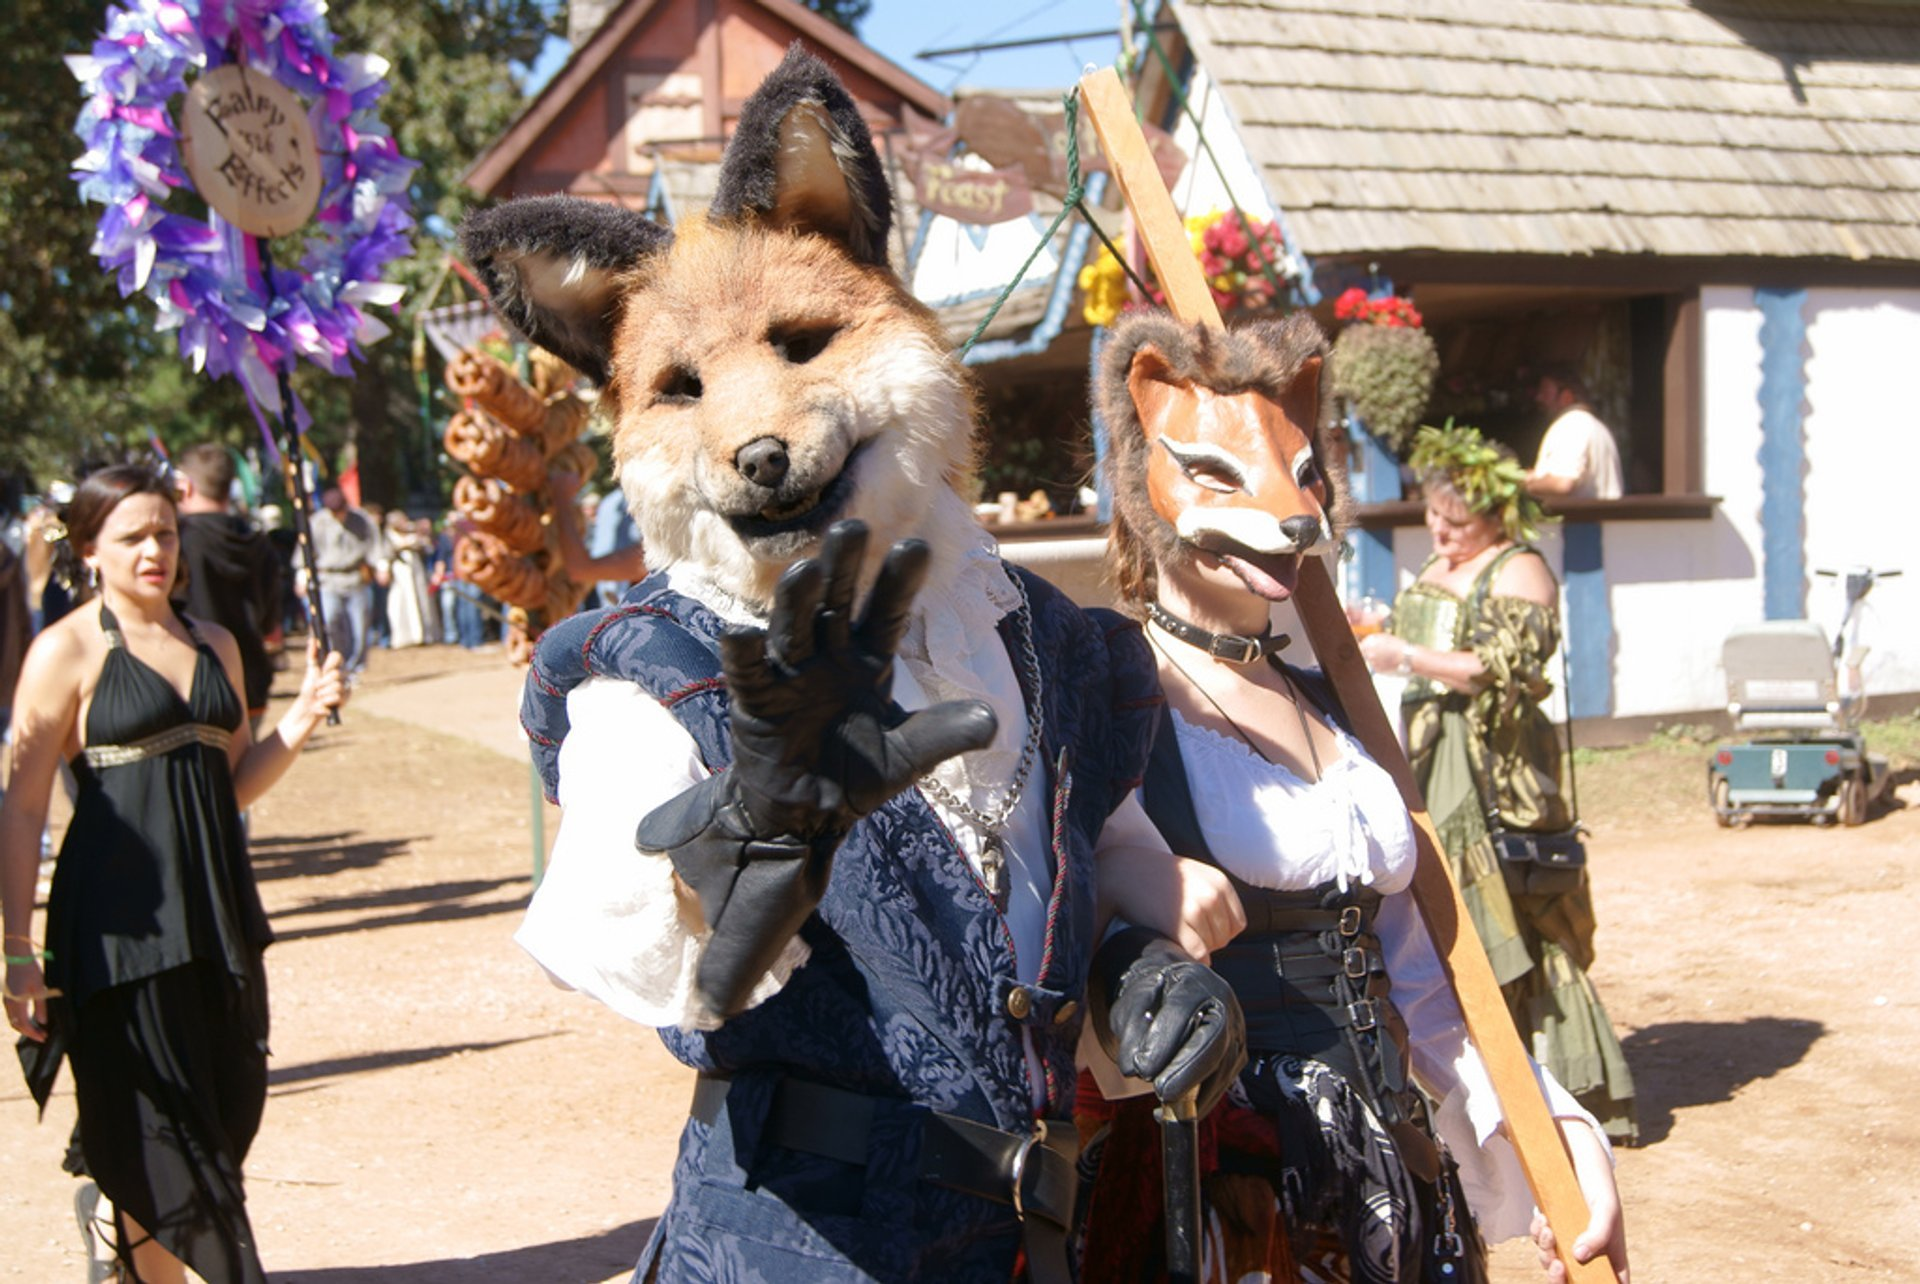 Best time to see Texas Renaissance Festival in Texas